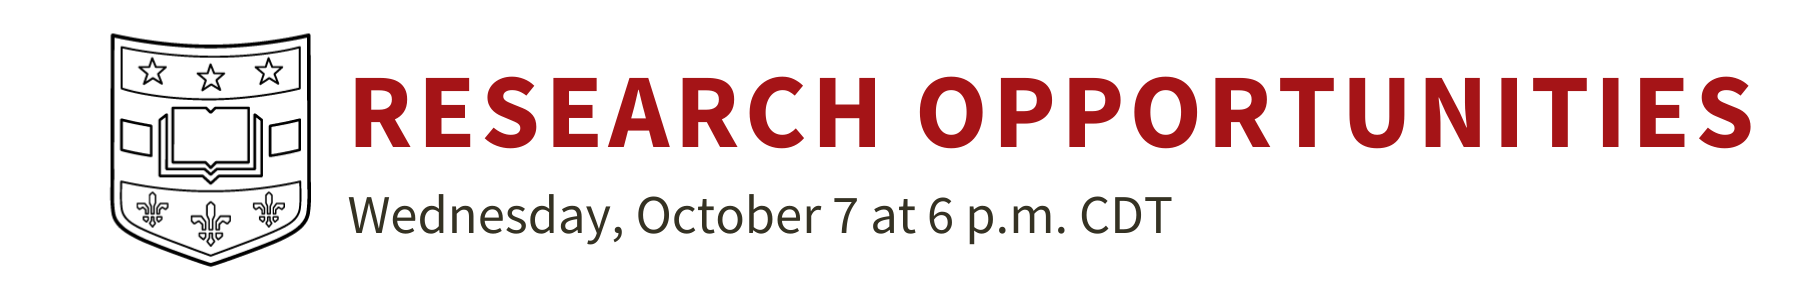 A virtual open house dedicated to research opportunities. The session is scheduled for Wednesday, October 7, at 6:00 p.m. CDT.